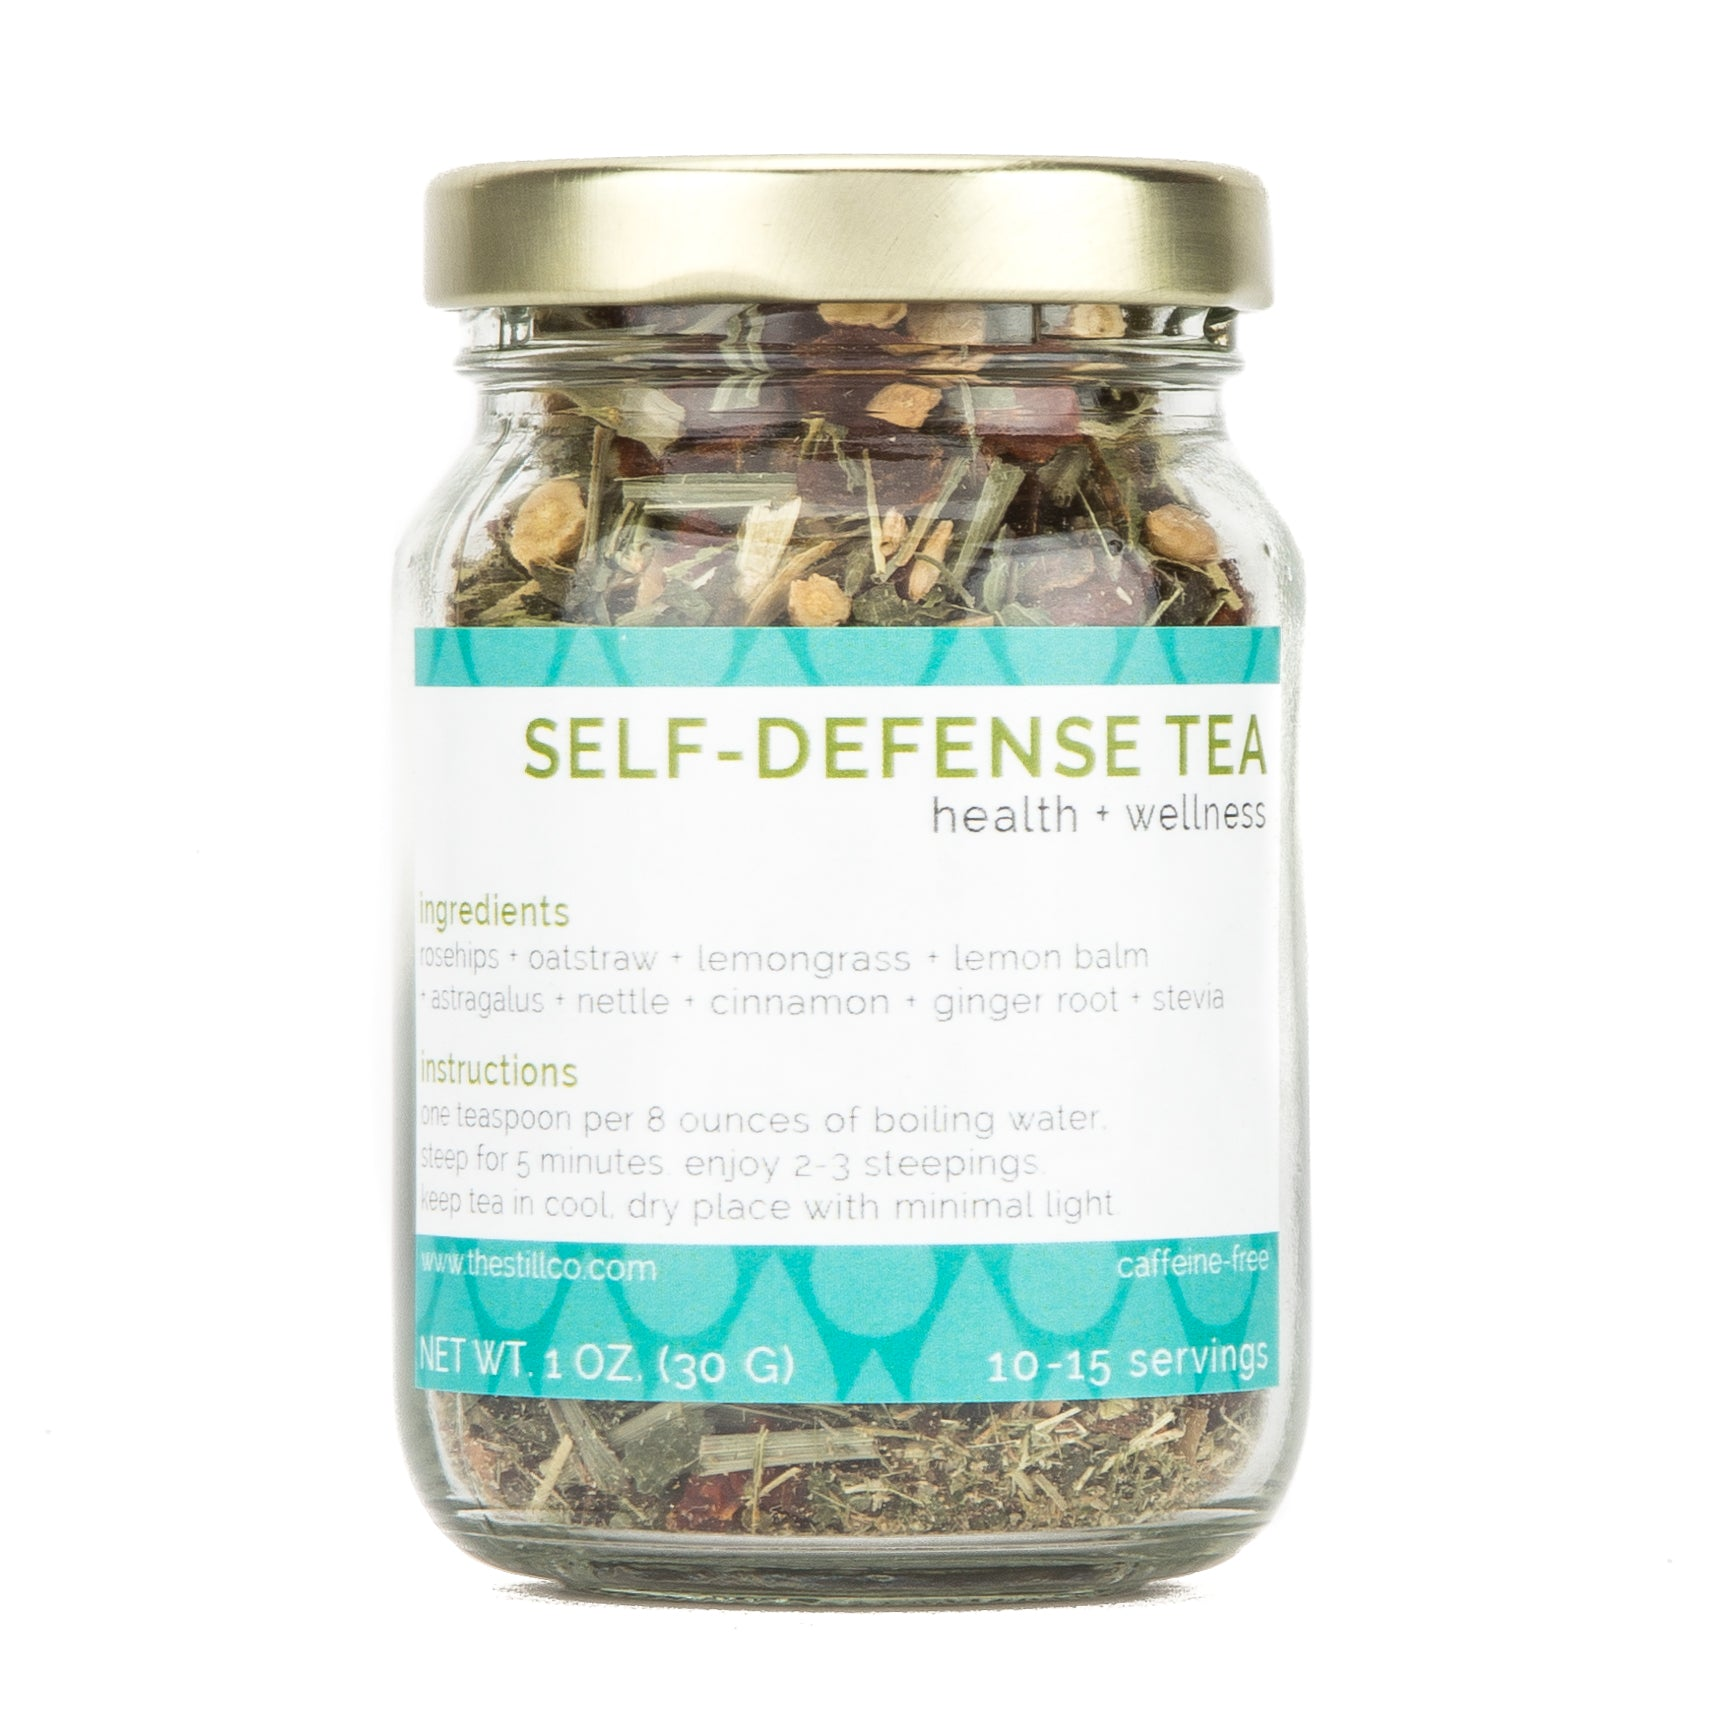 Self-Defense Tea